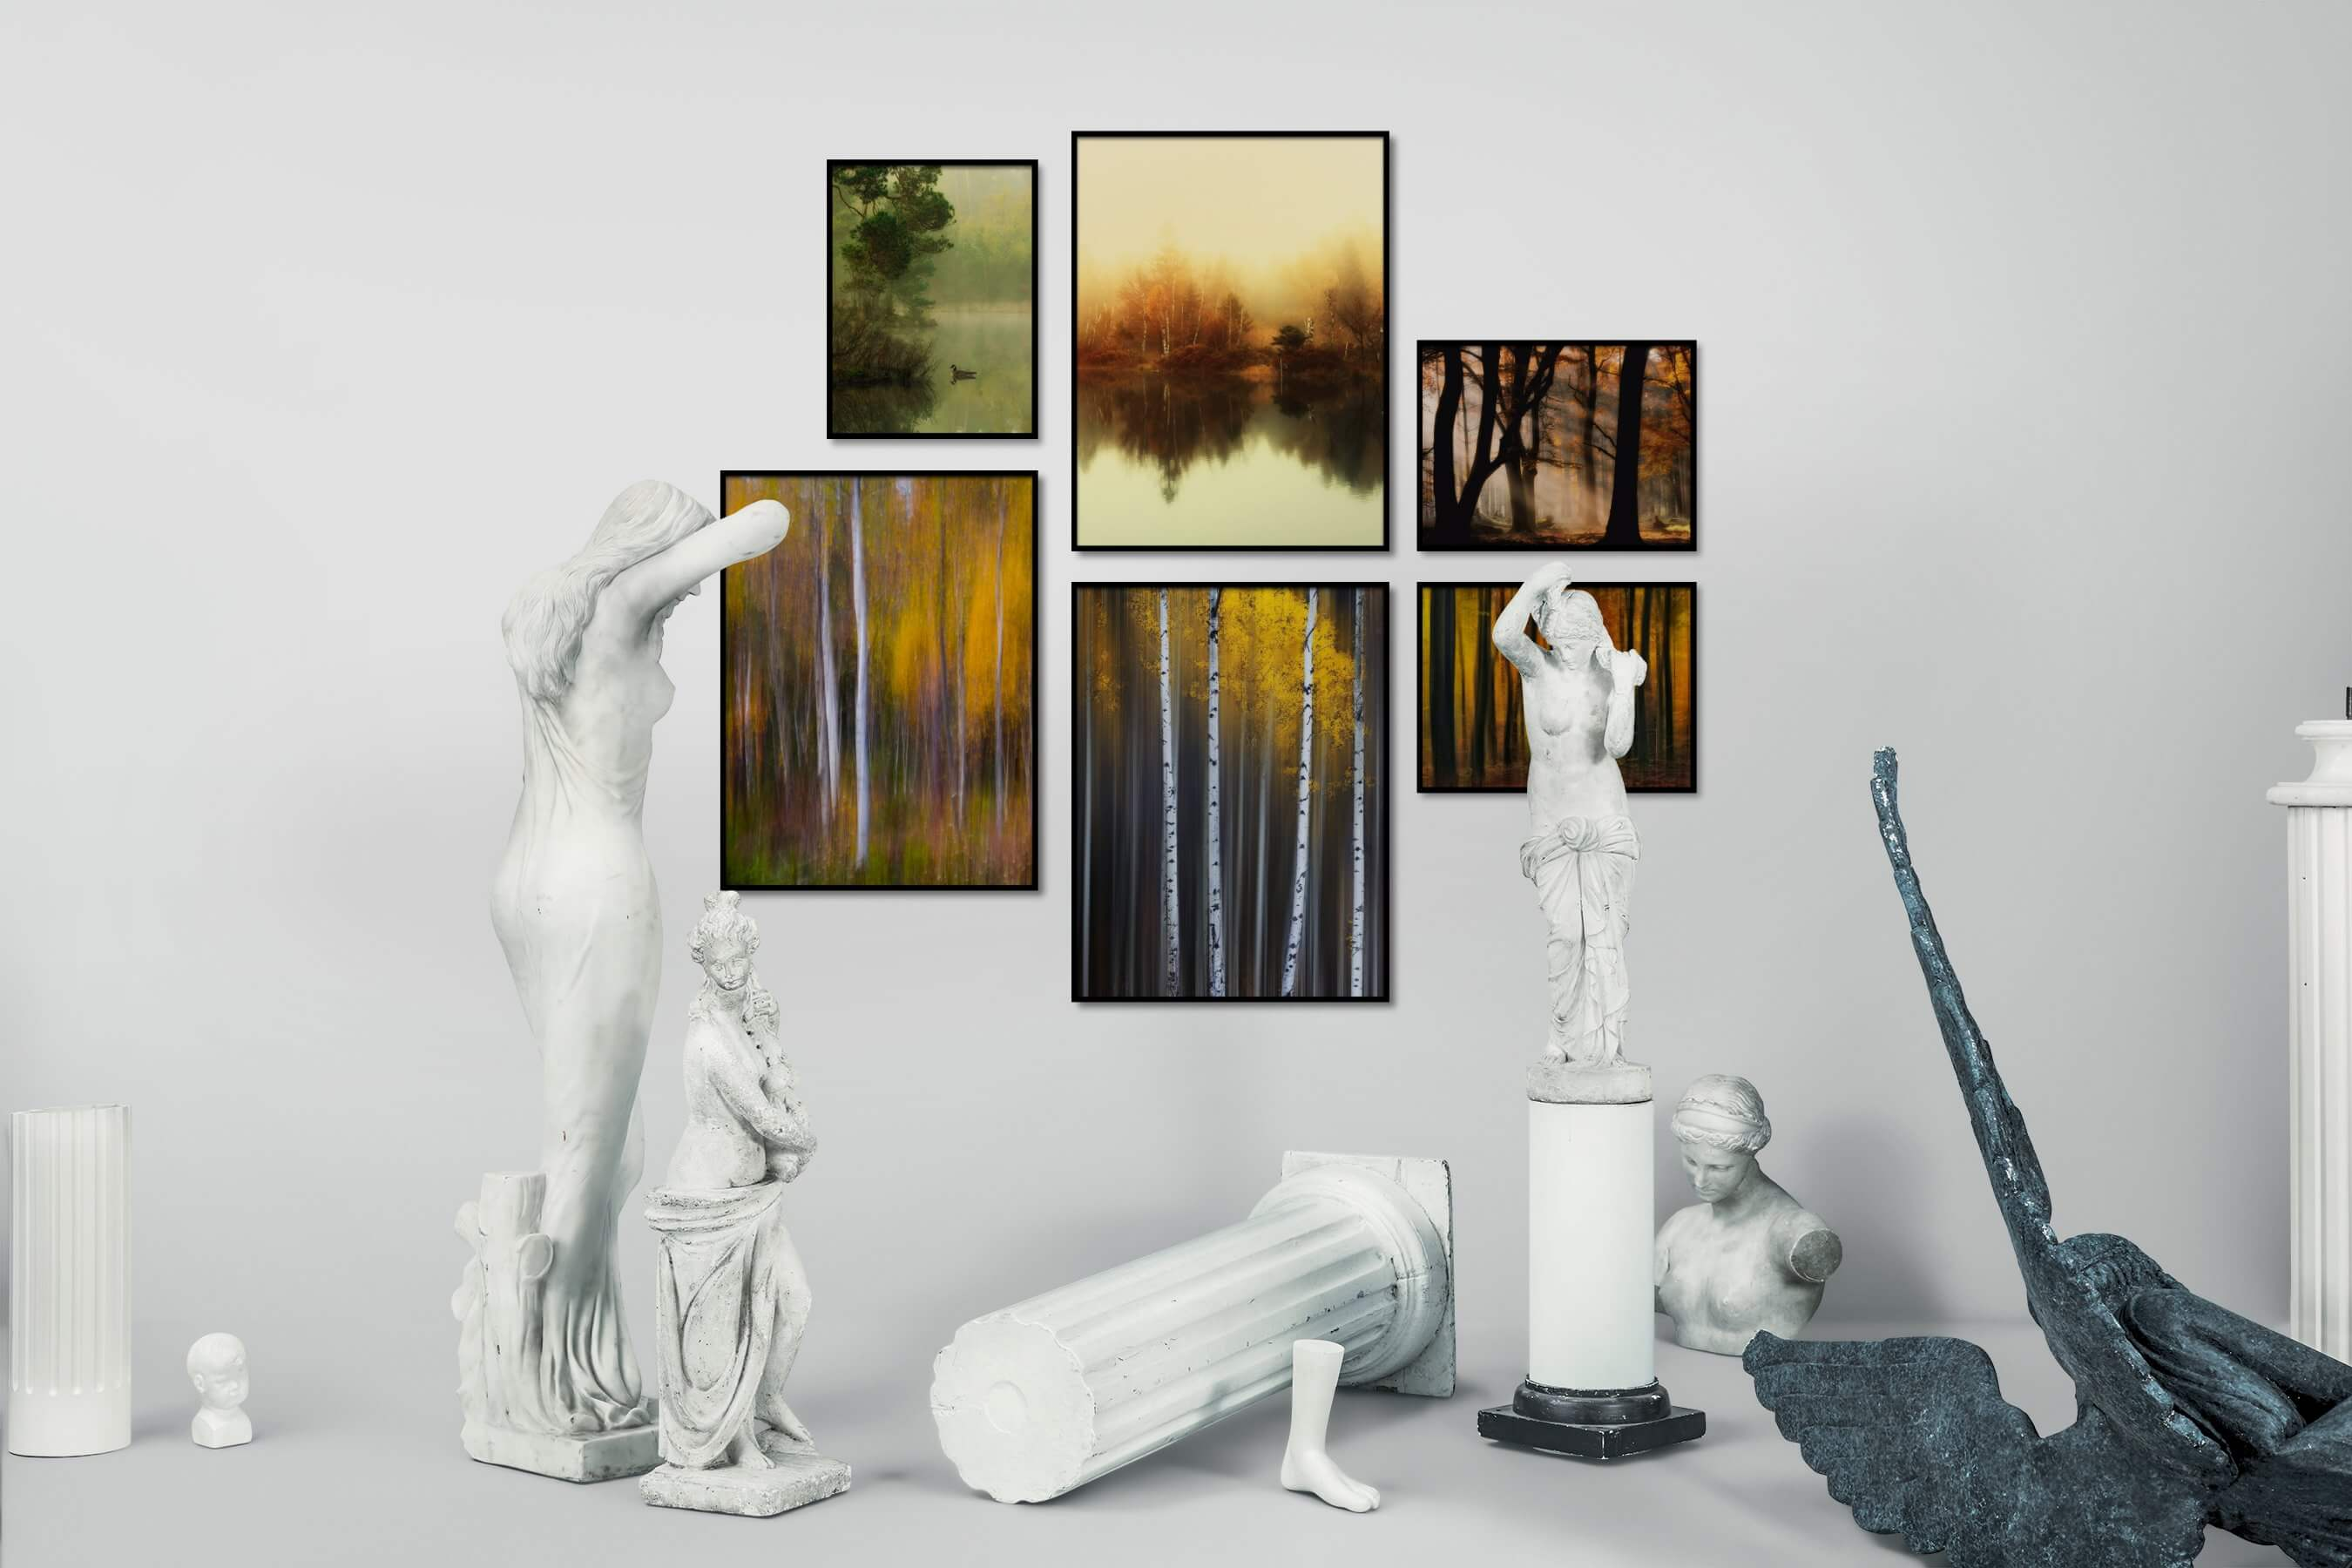 Gallery wall idea with six framed pictures arranged on a wall depicting Nature, Animals, For the Minimalist, For the Moderate, and For the Maximalist